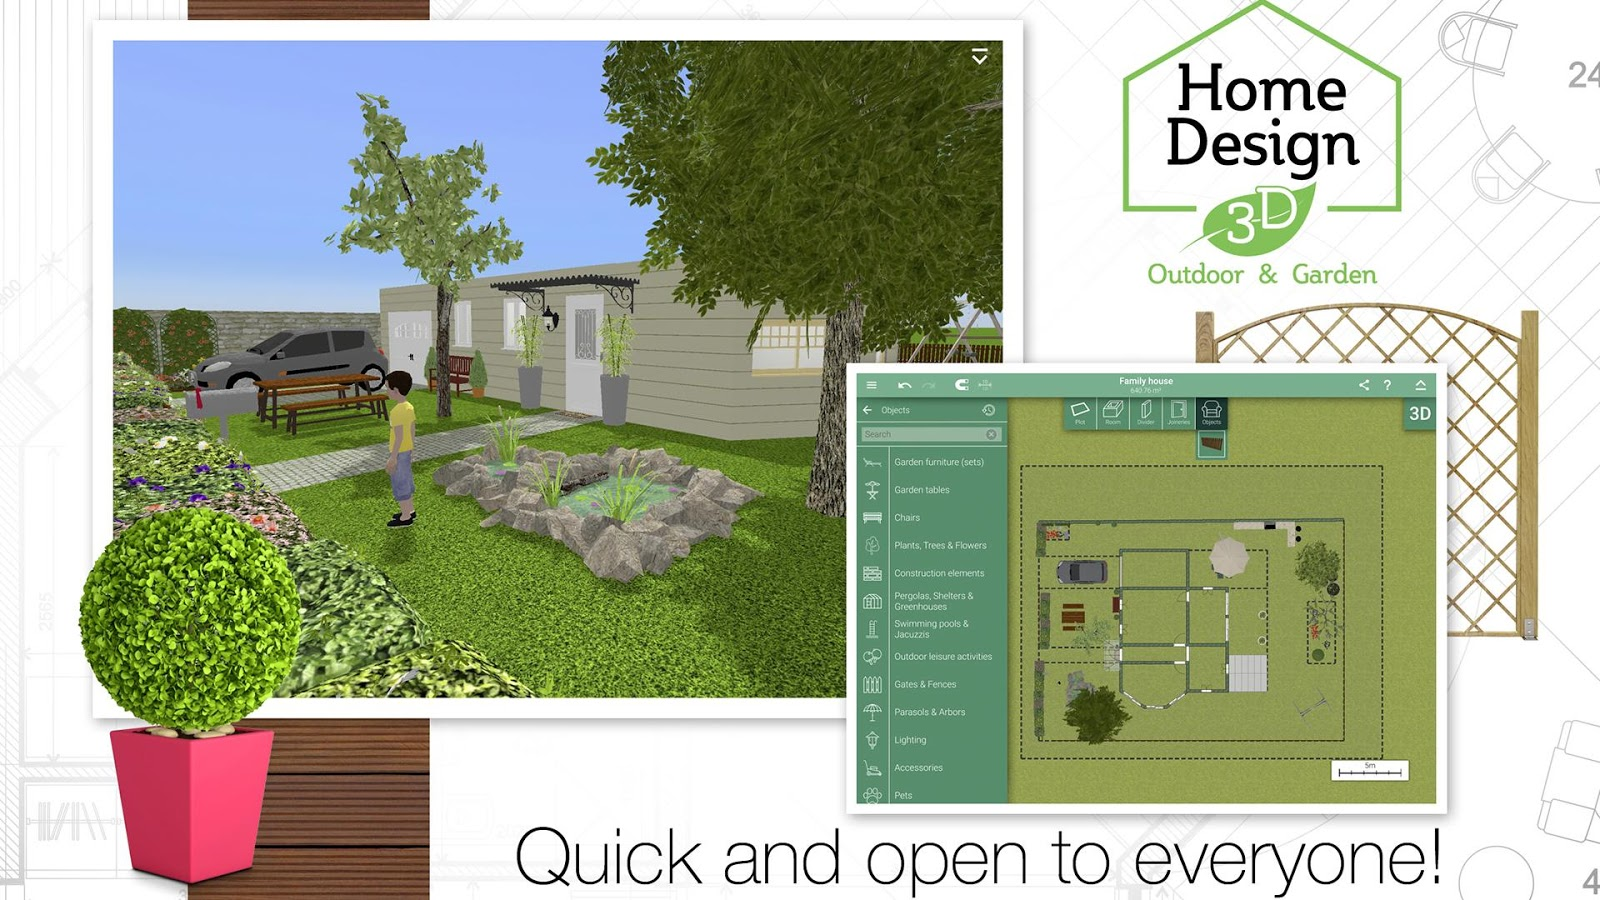 Home Design 3D OutdoorGarden Android Apps on Google Play